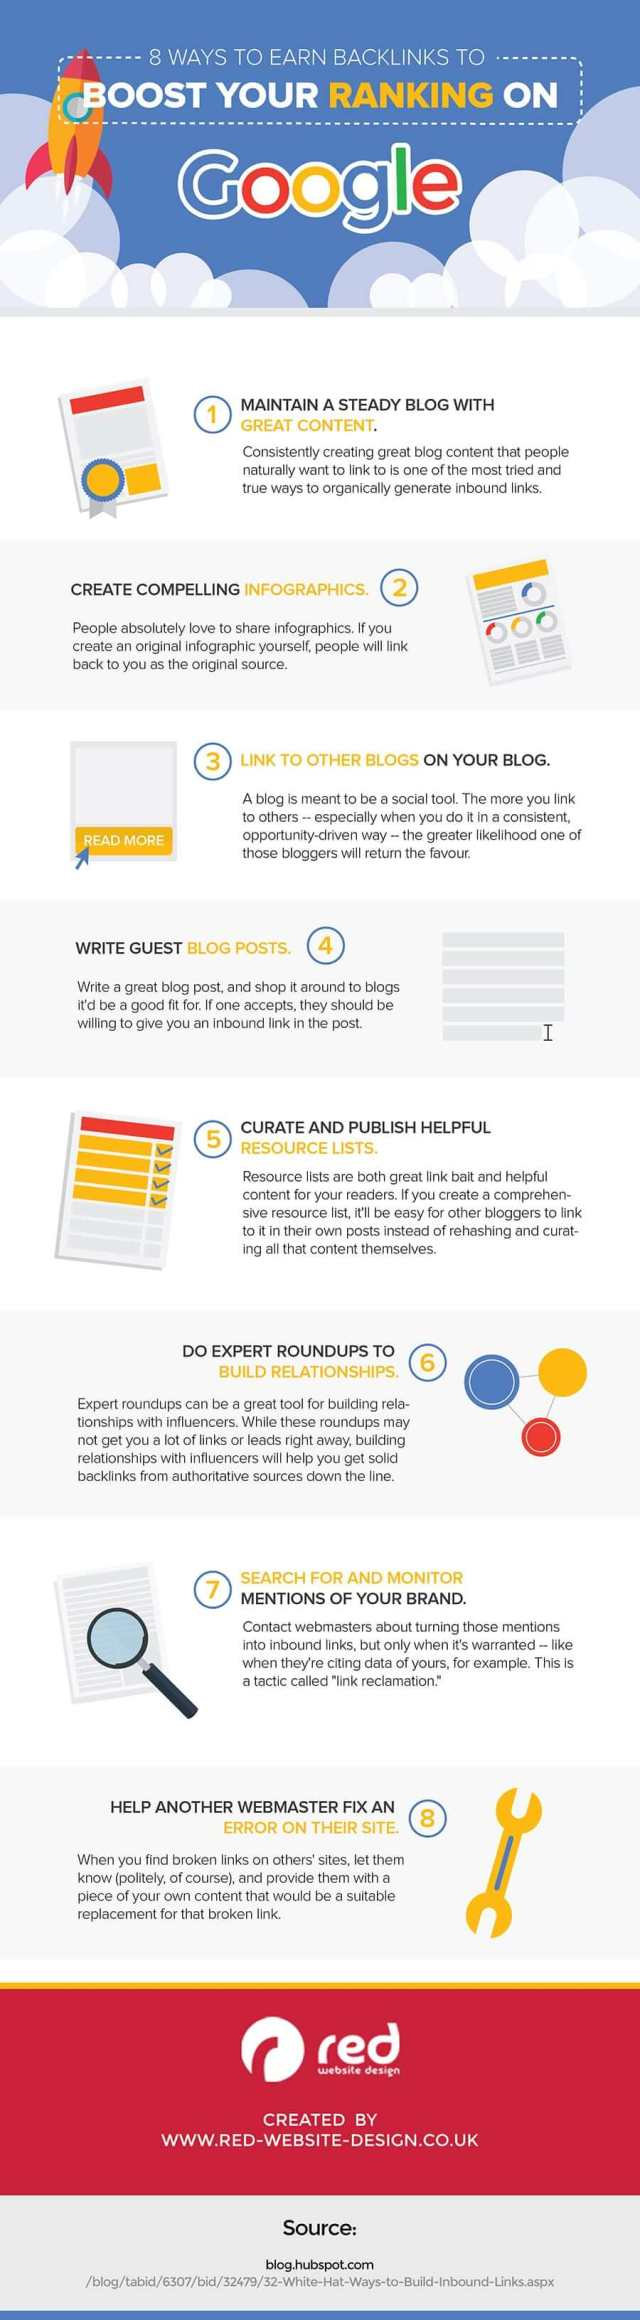 ways boost rankings on google infographic compressed